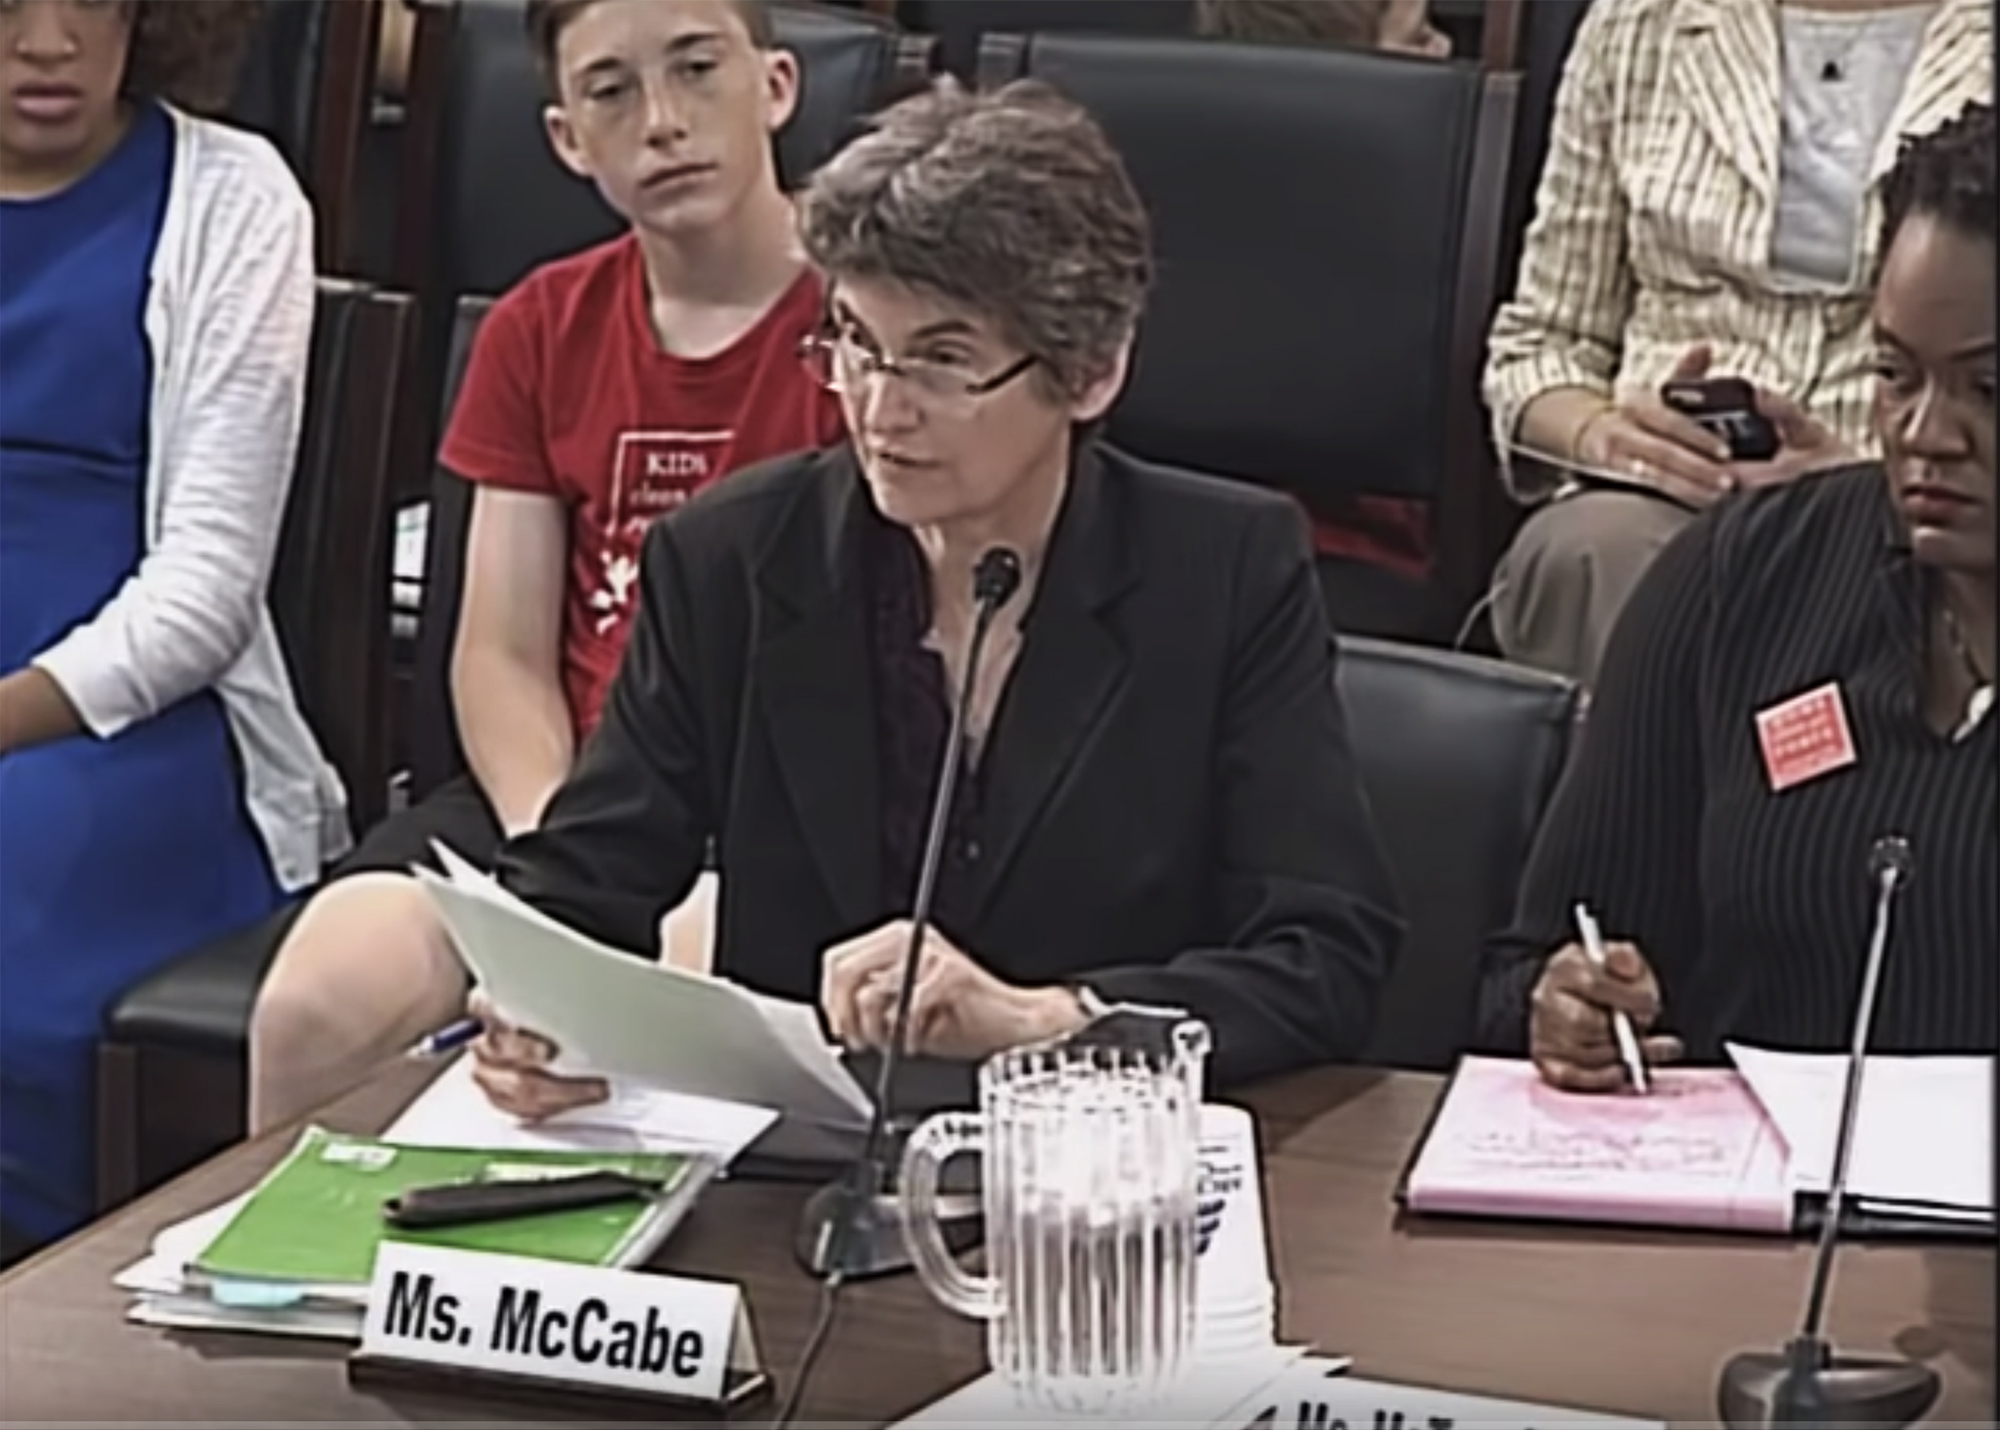 This is a picture of Indiana University professor of practice Janet McCabe, who is testifying at a Congressional hearing in Washington, D.C.